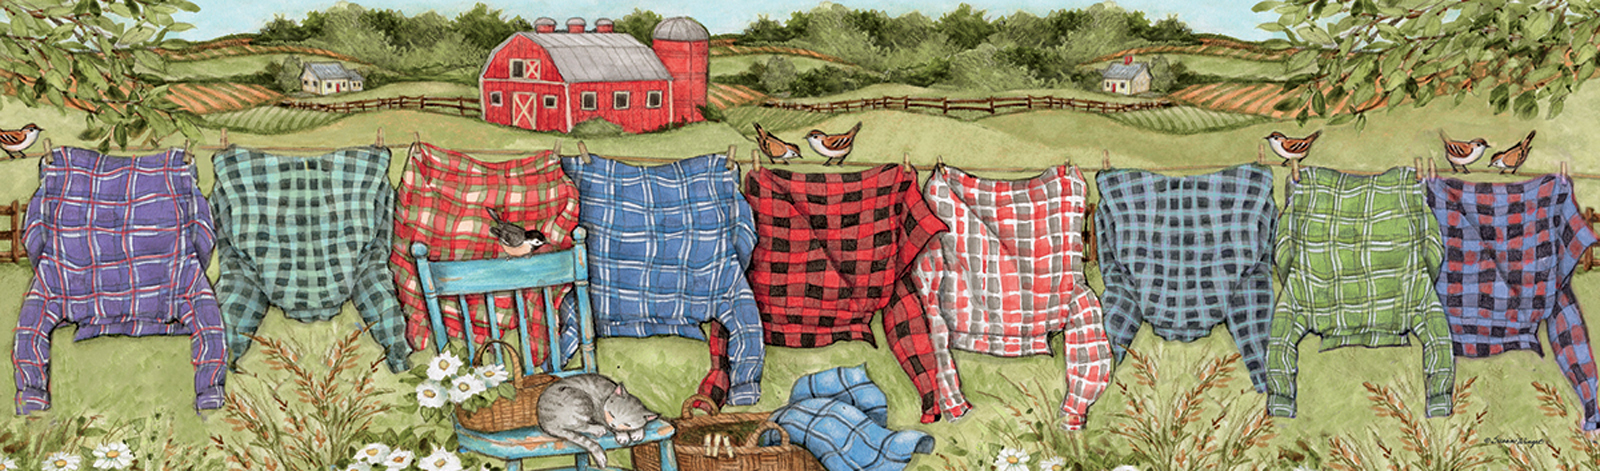 Favorite Flannel Everyday Objects Jigsaw Puzzle